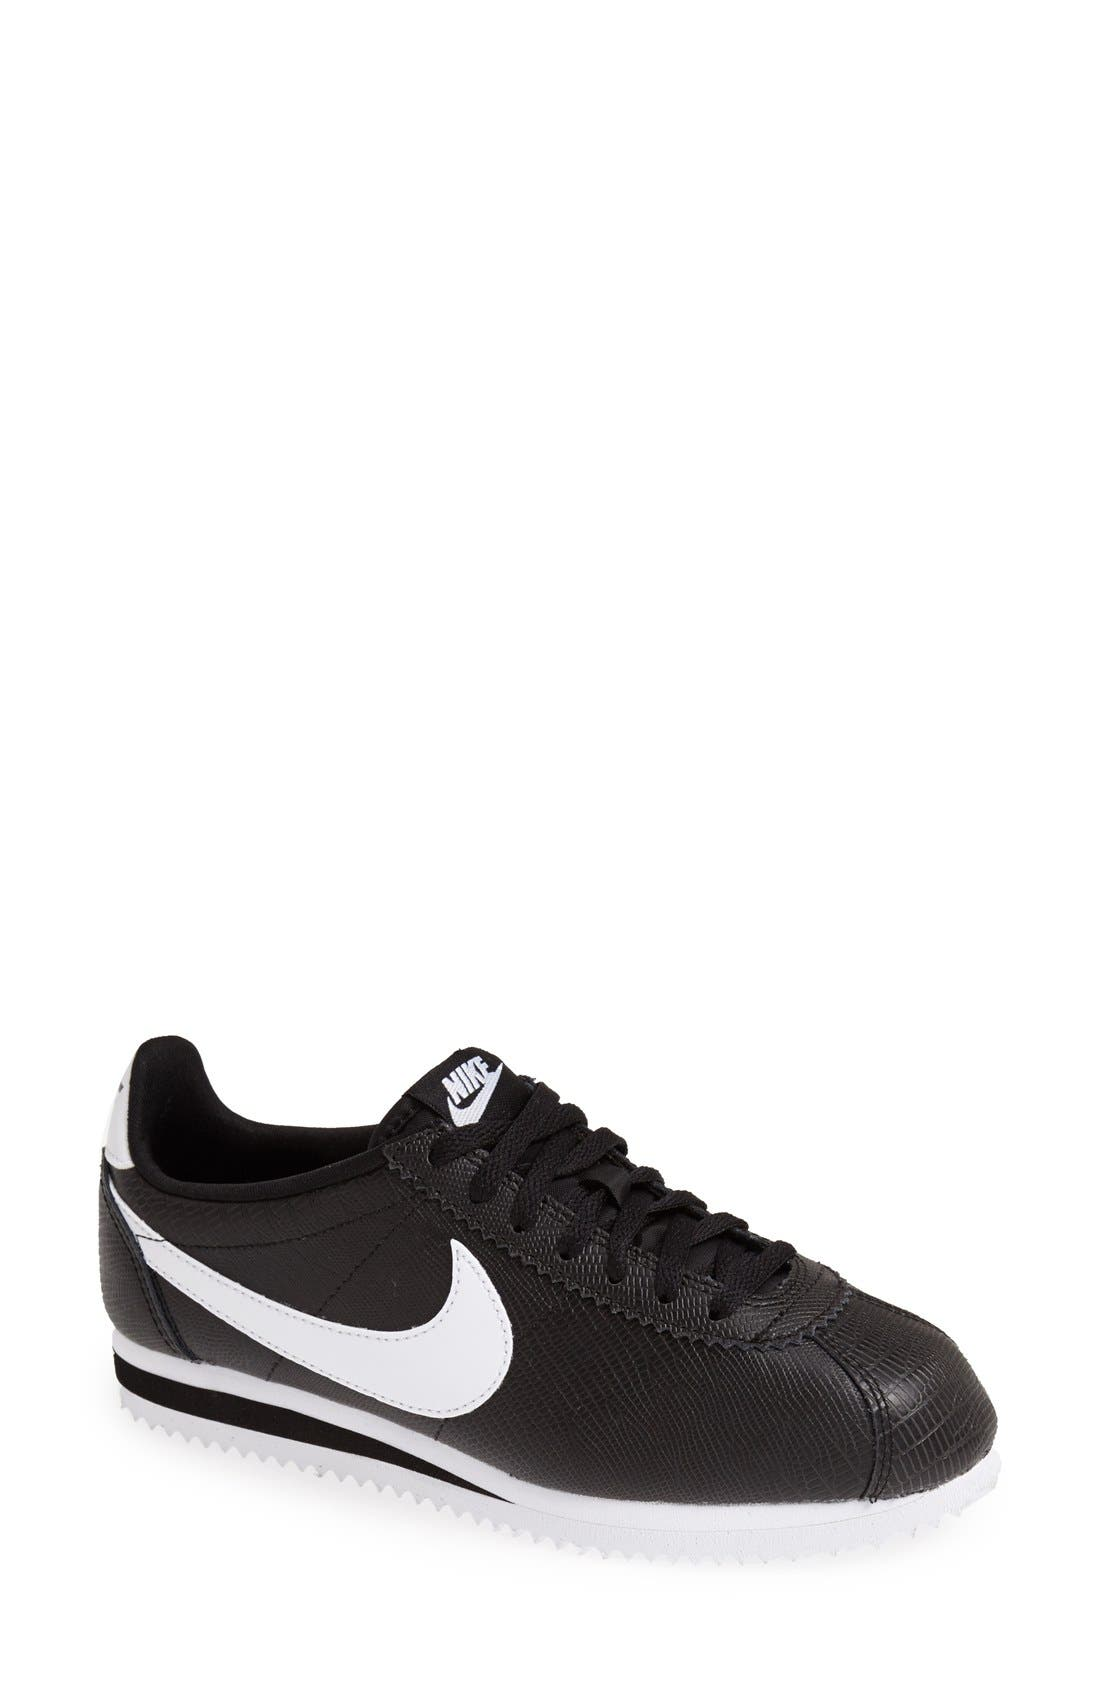 Alternate Image 1 Selected - Nike 'Classic Cortez' Leather Sneaker (Women)